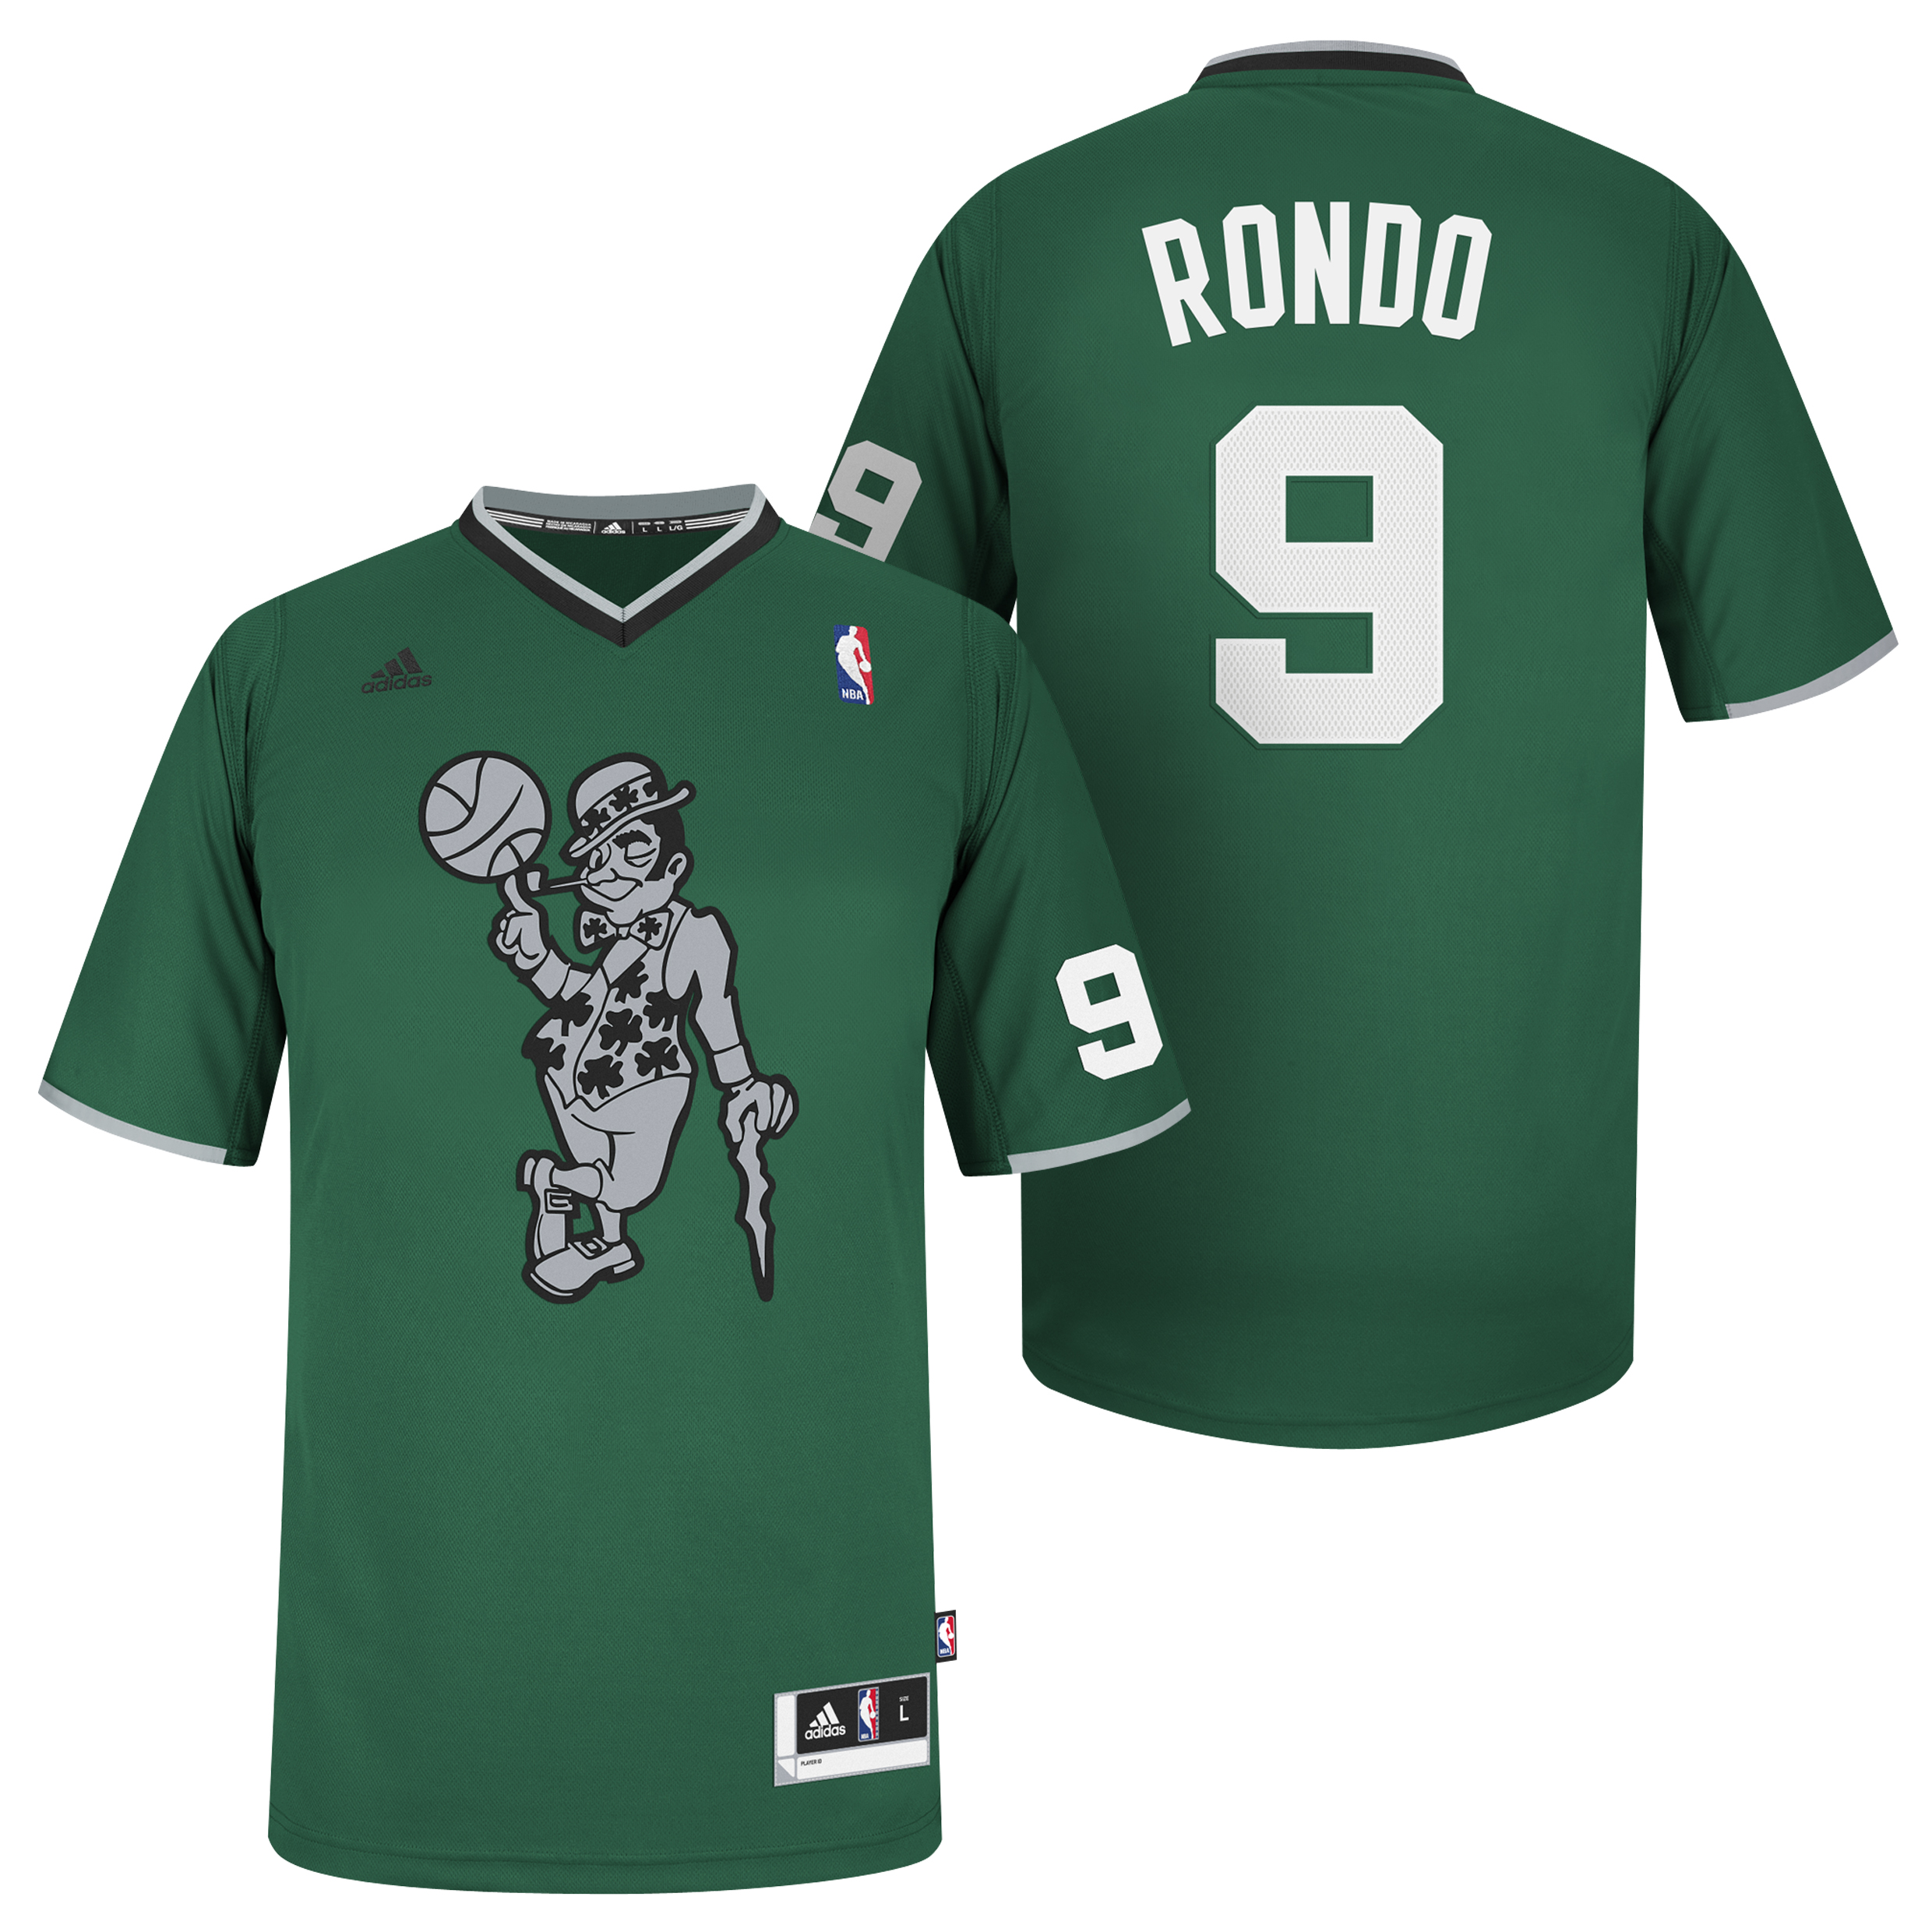 Boston Celtics X-mas Big Logo Swingman Jersey - Rajon Rondo